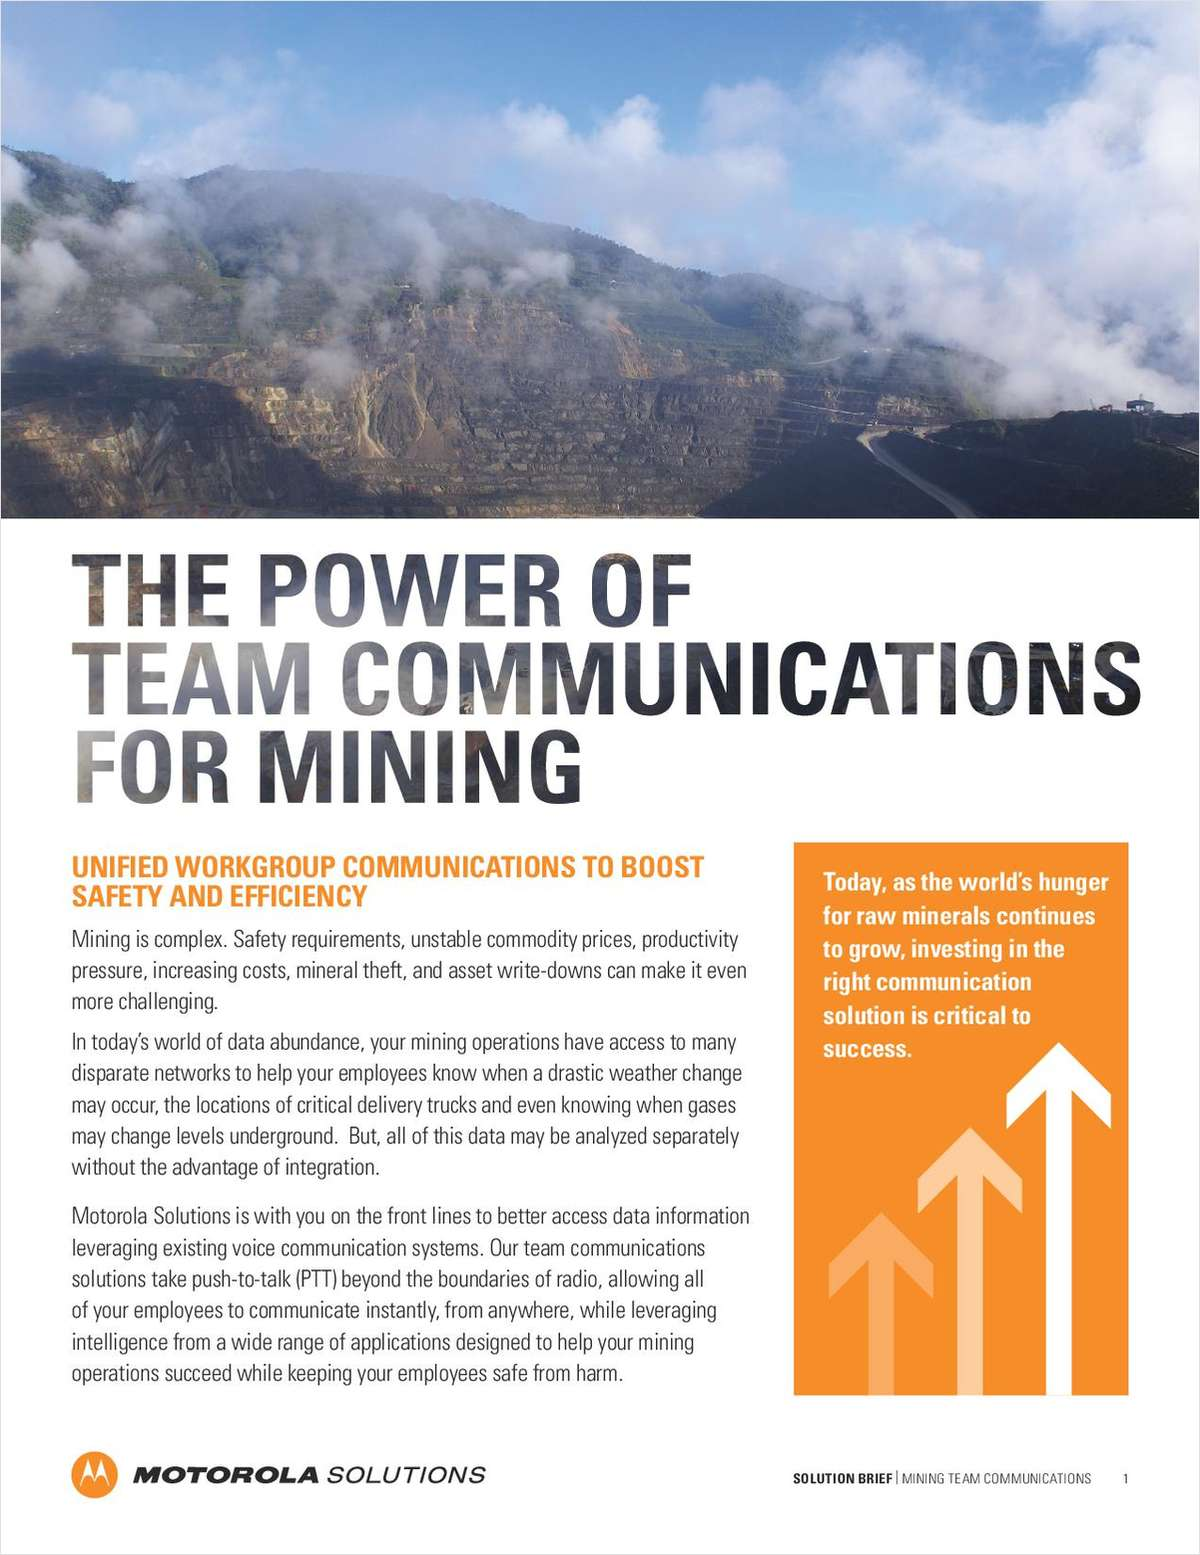 The Power of Team Communications for Mining